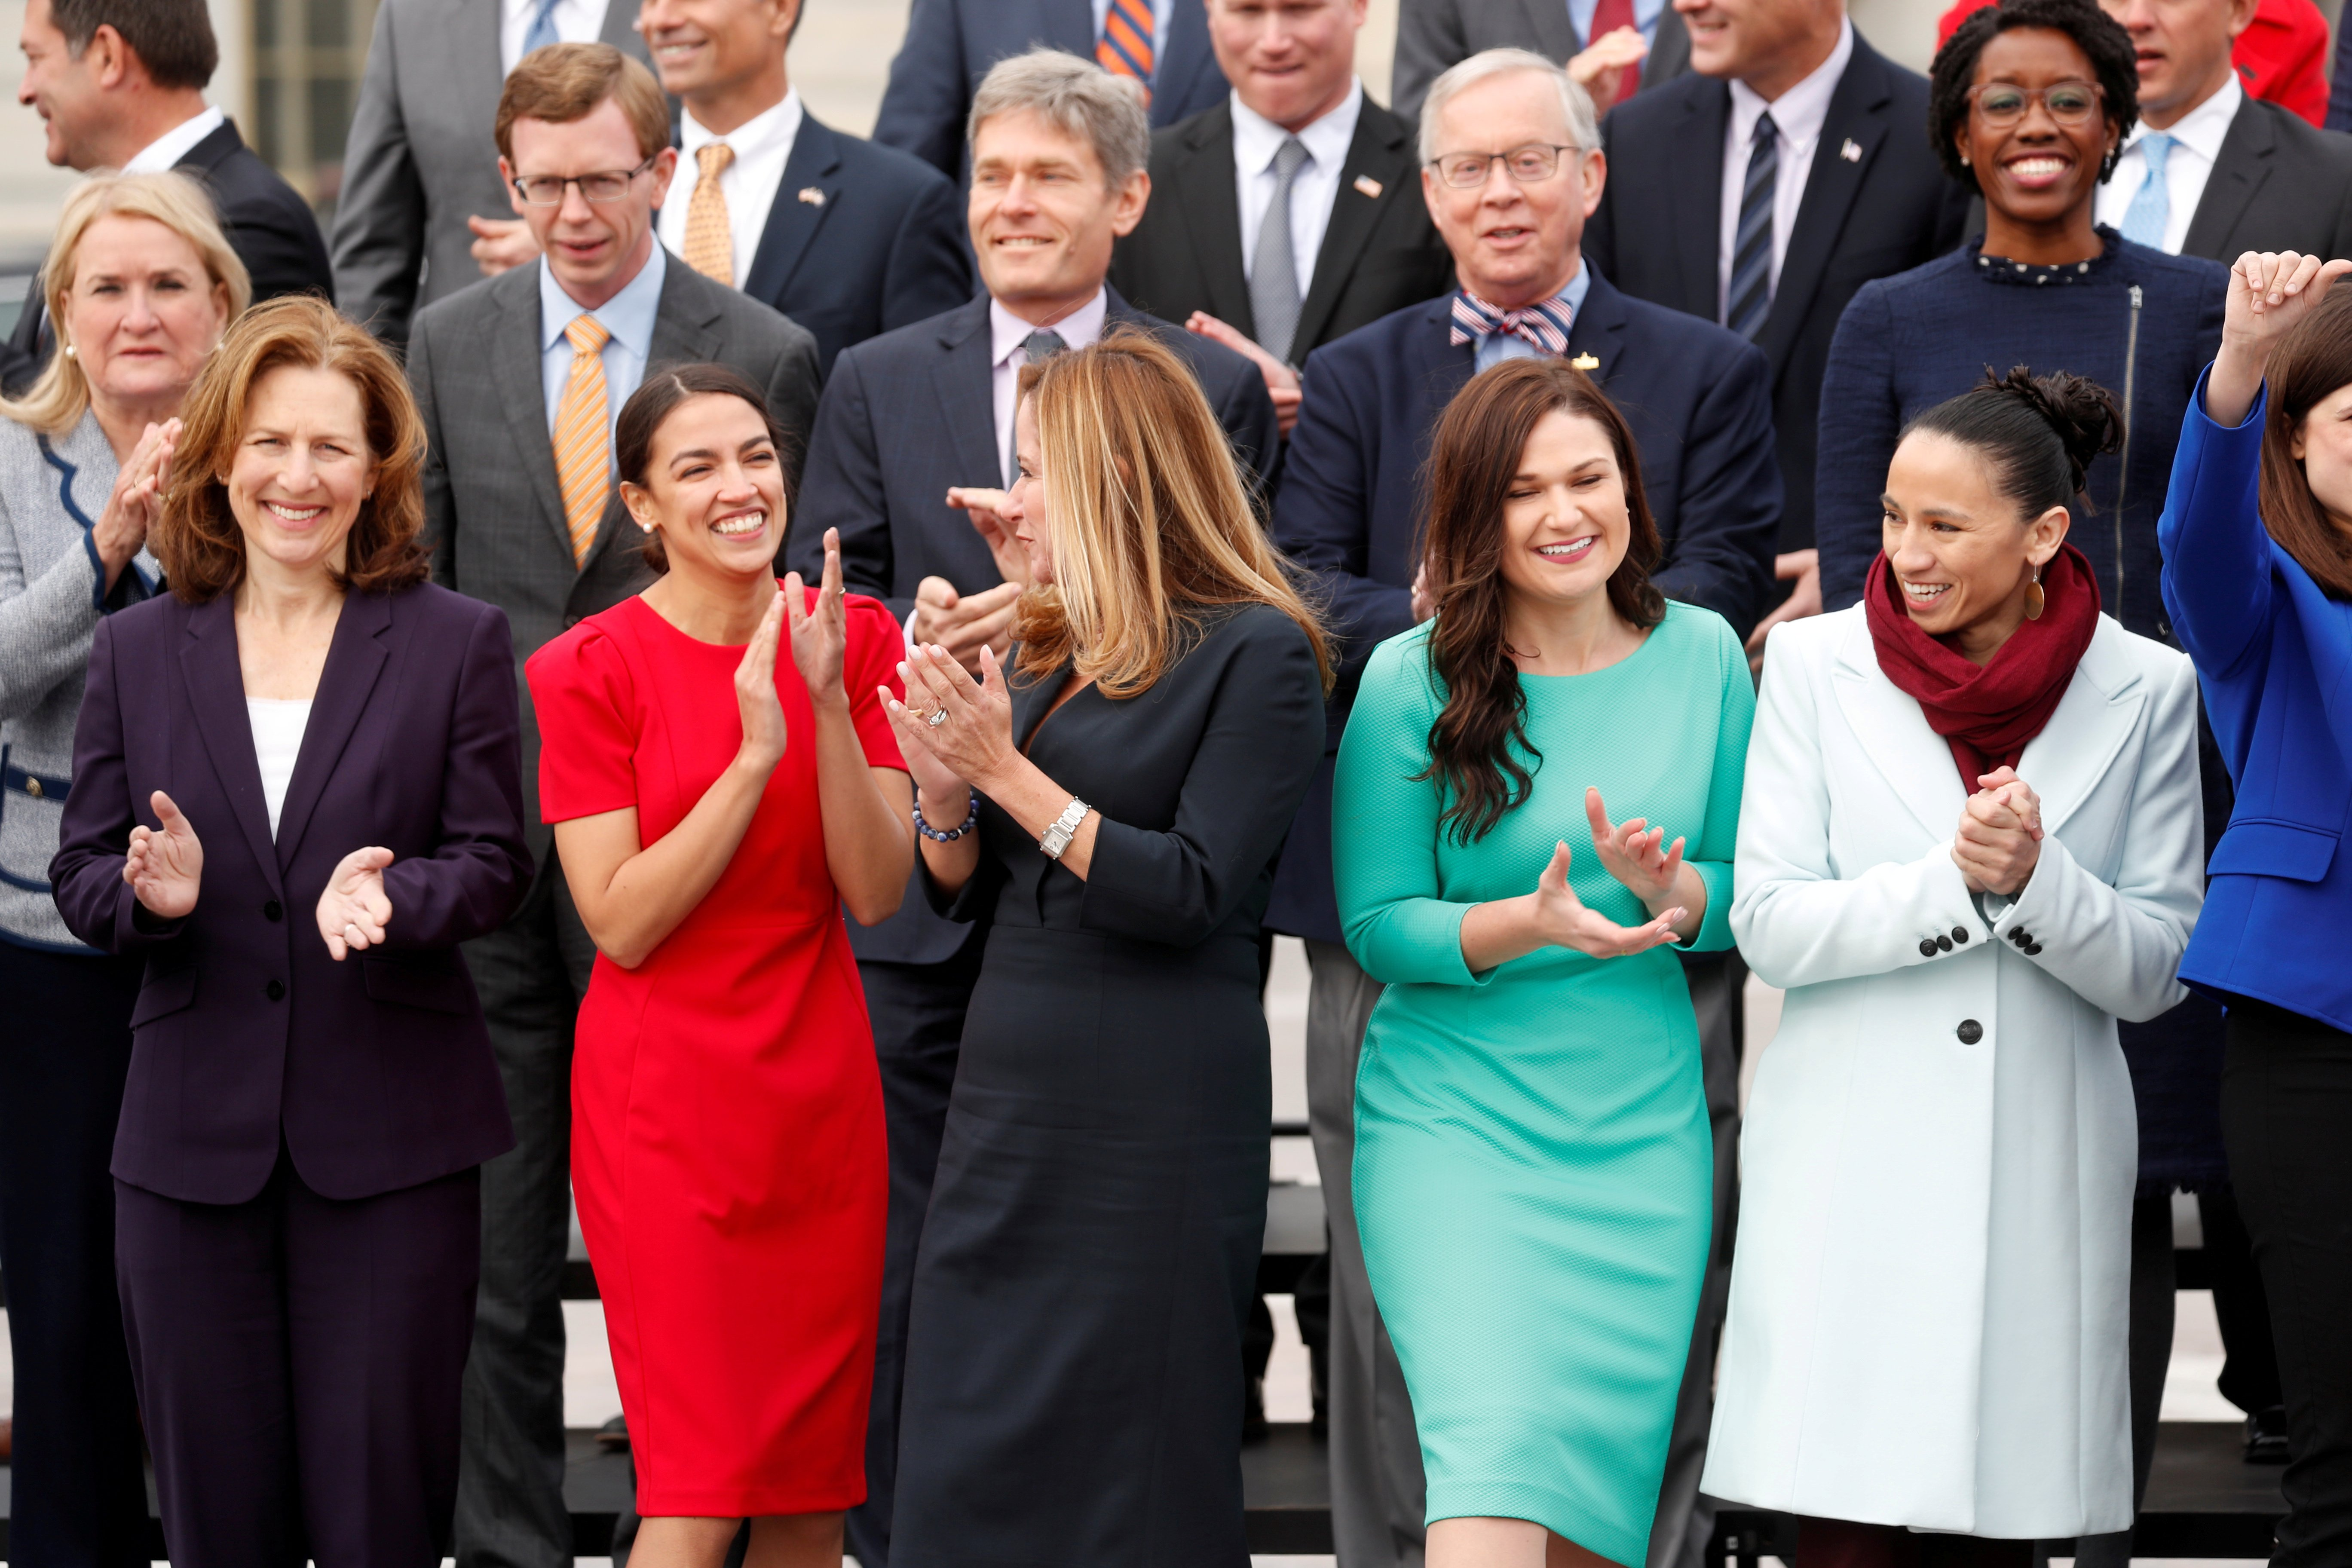 Female Democratic Representatives-elect pose together in front row of class picture on Capitol Hill in Washington